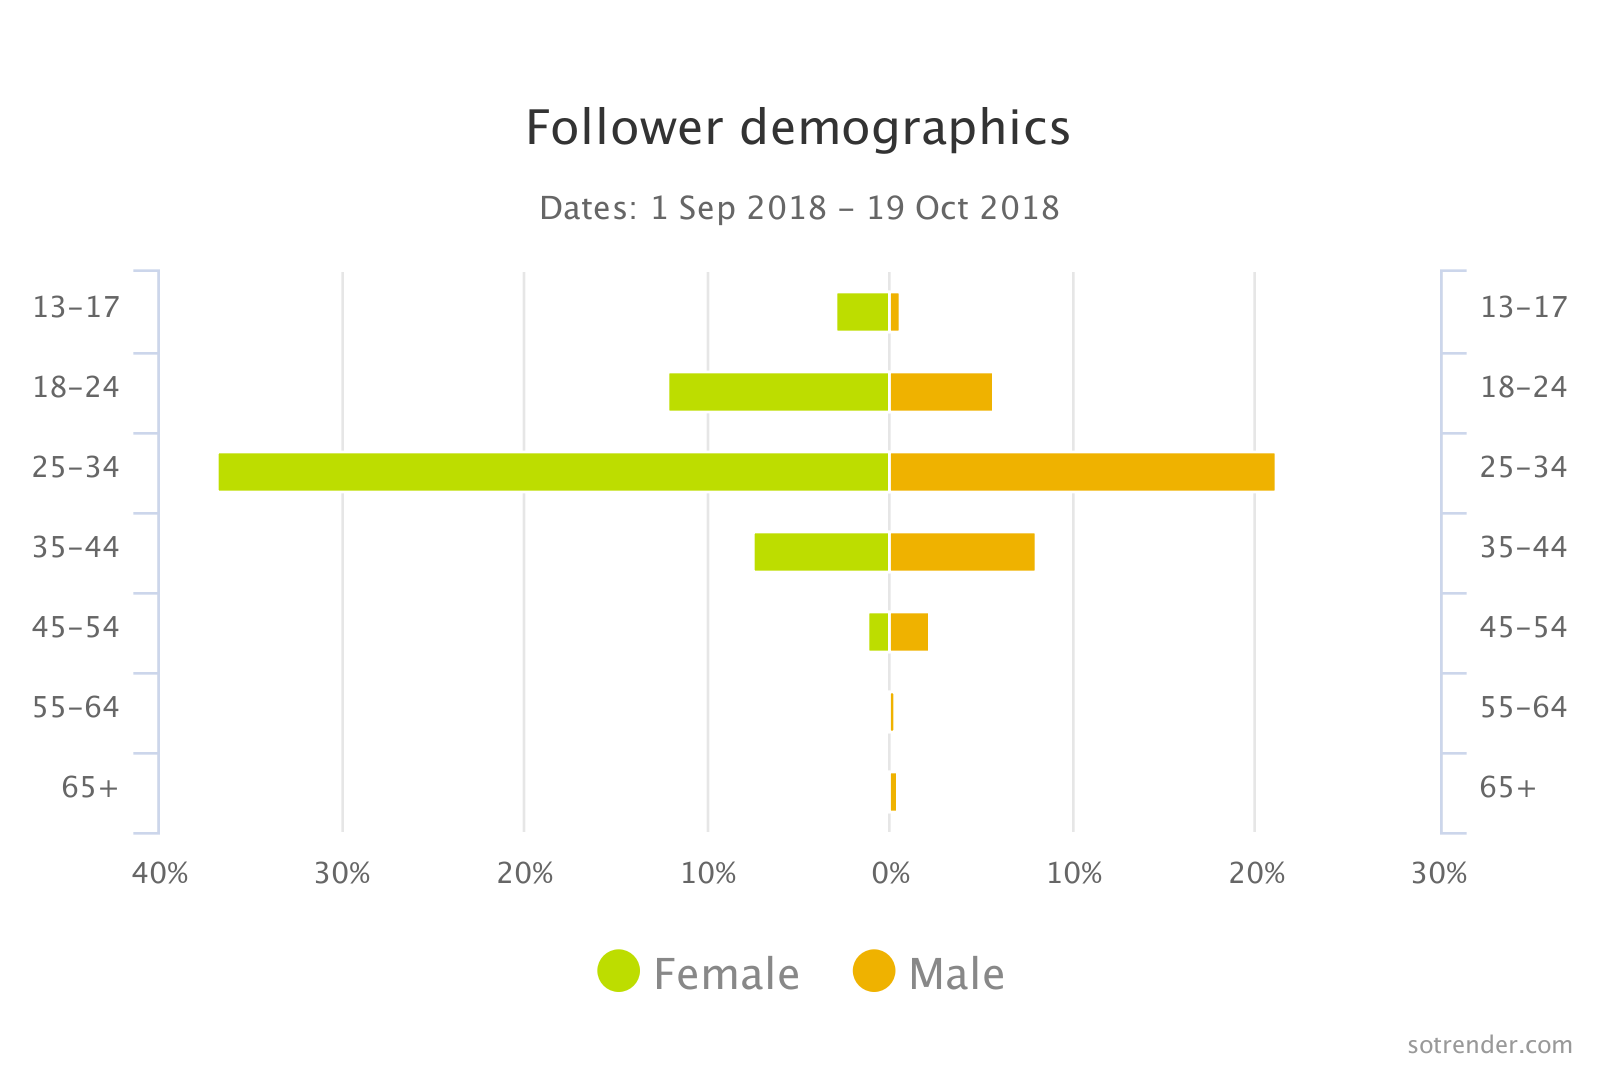 Follower demographic